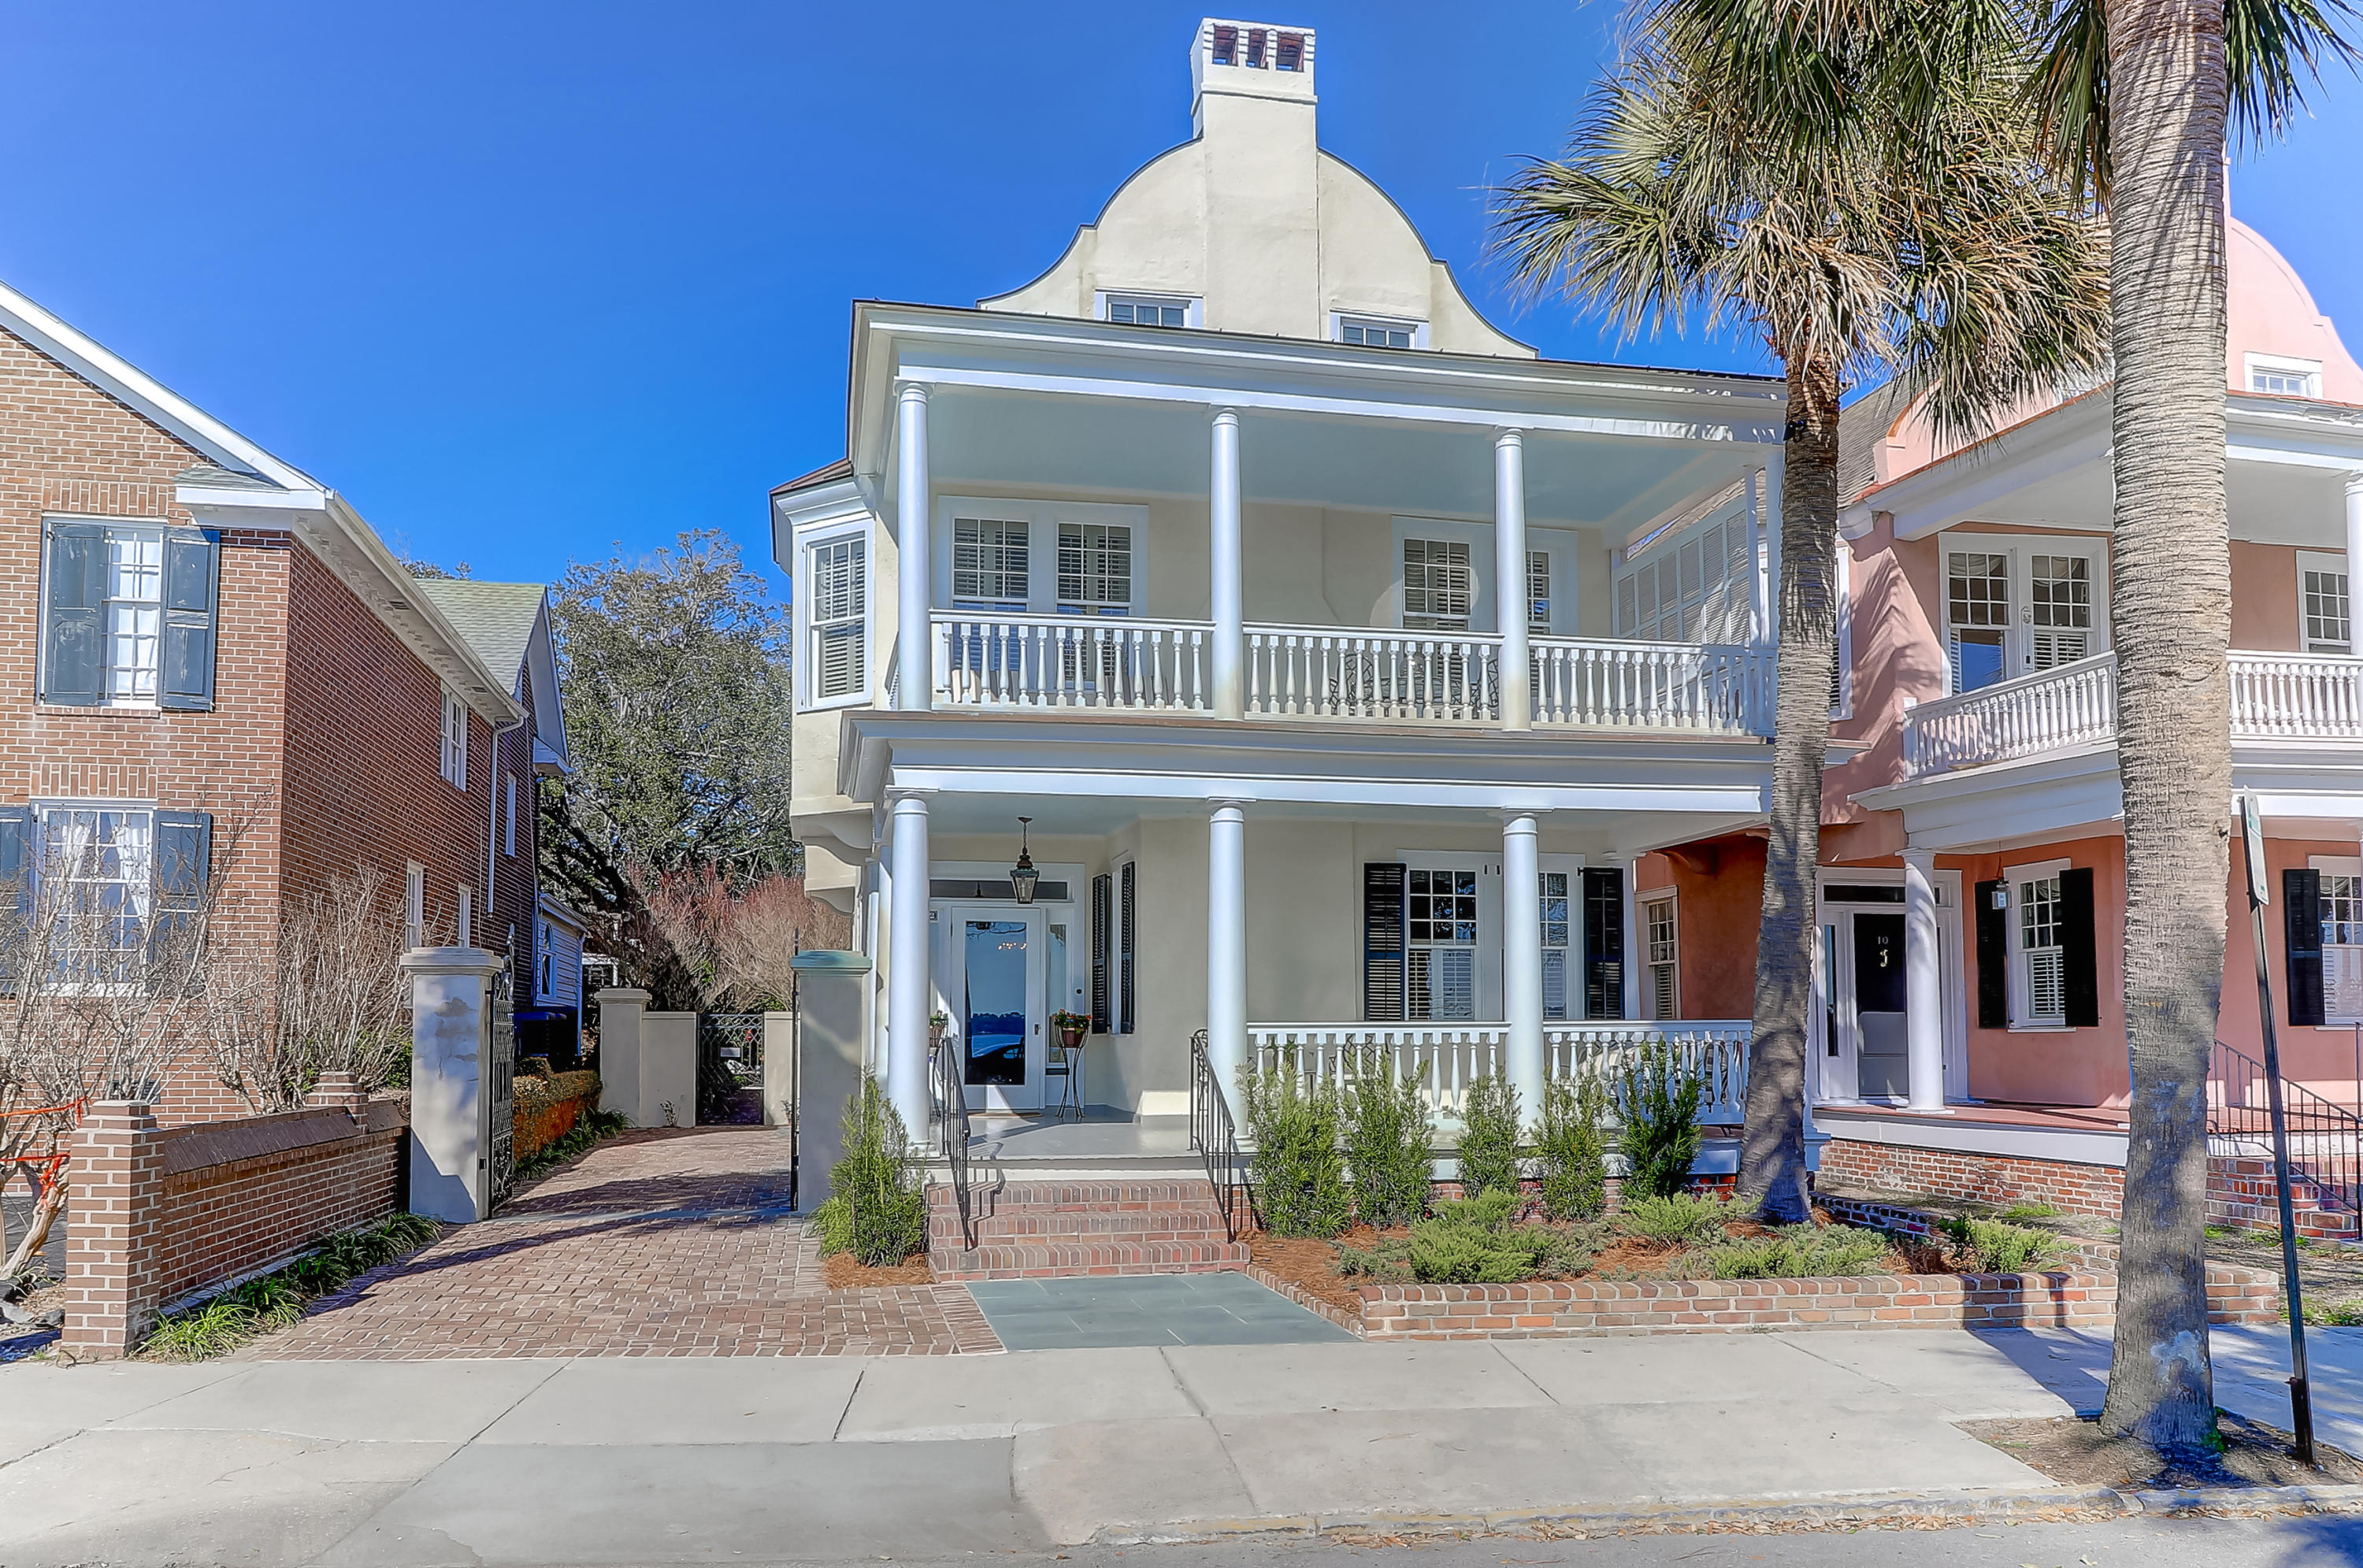 Photo of 12 Murray Blvd, Charleston, SC 29401